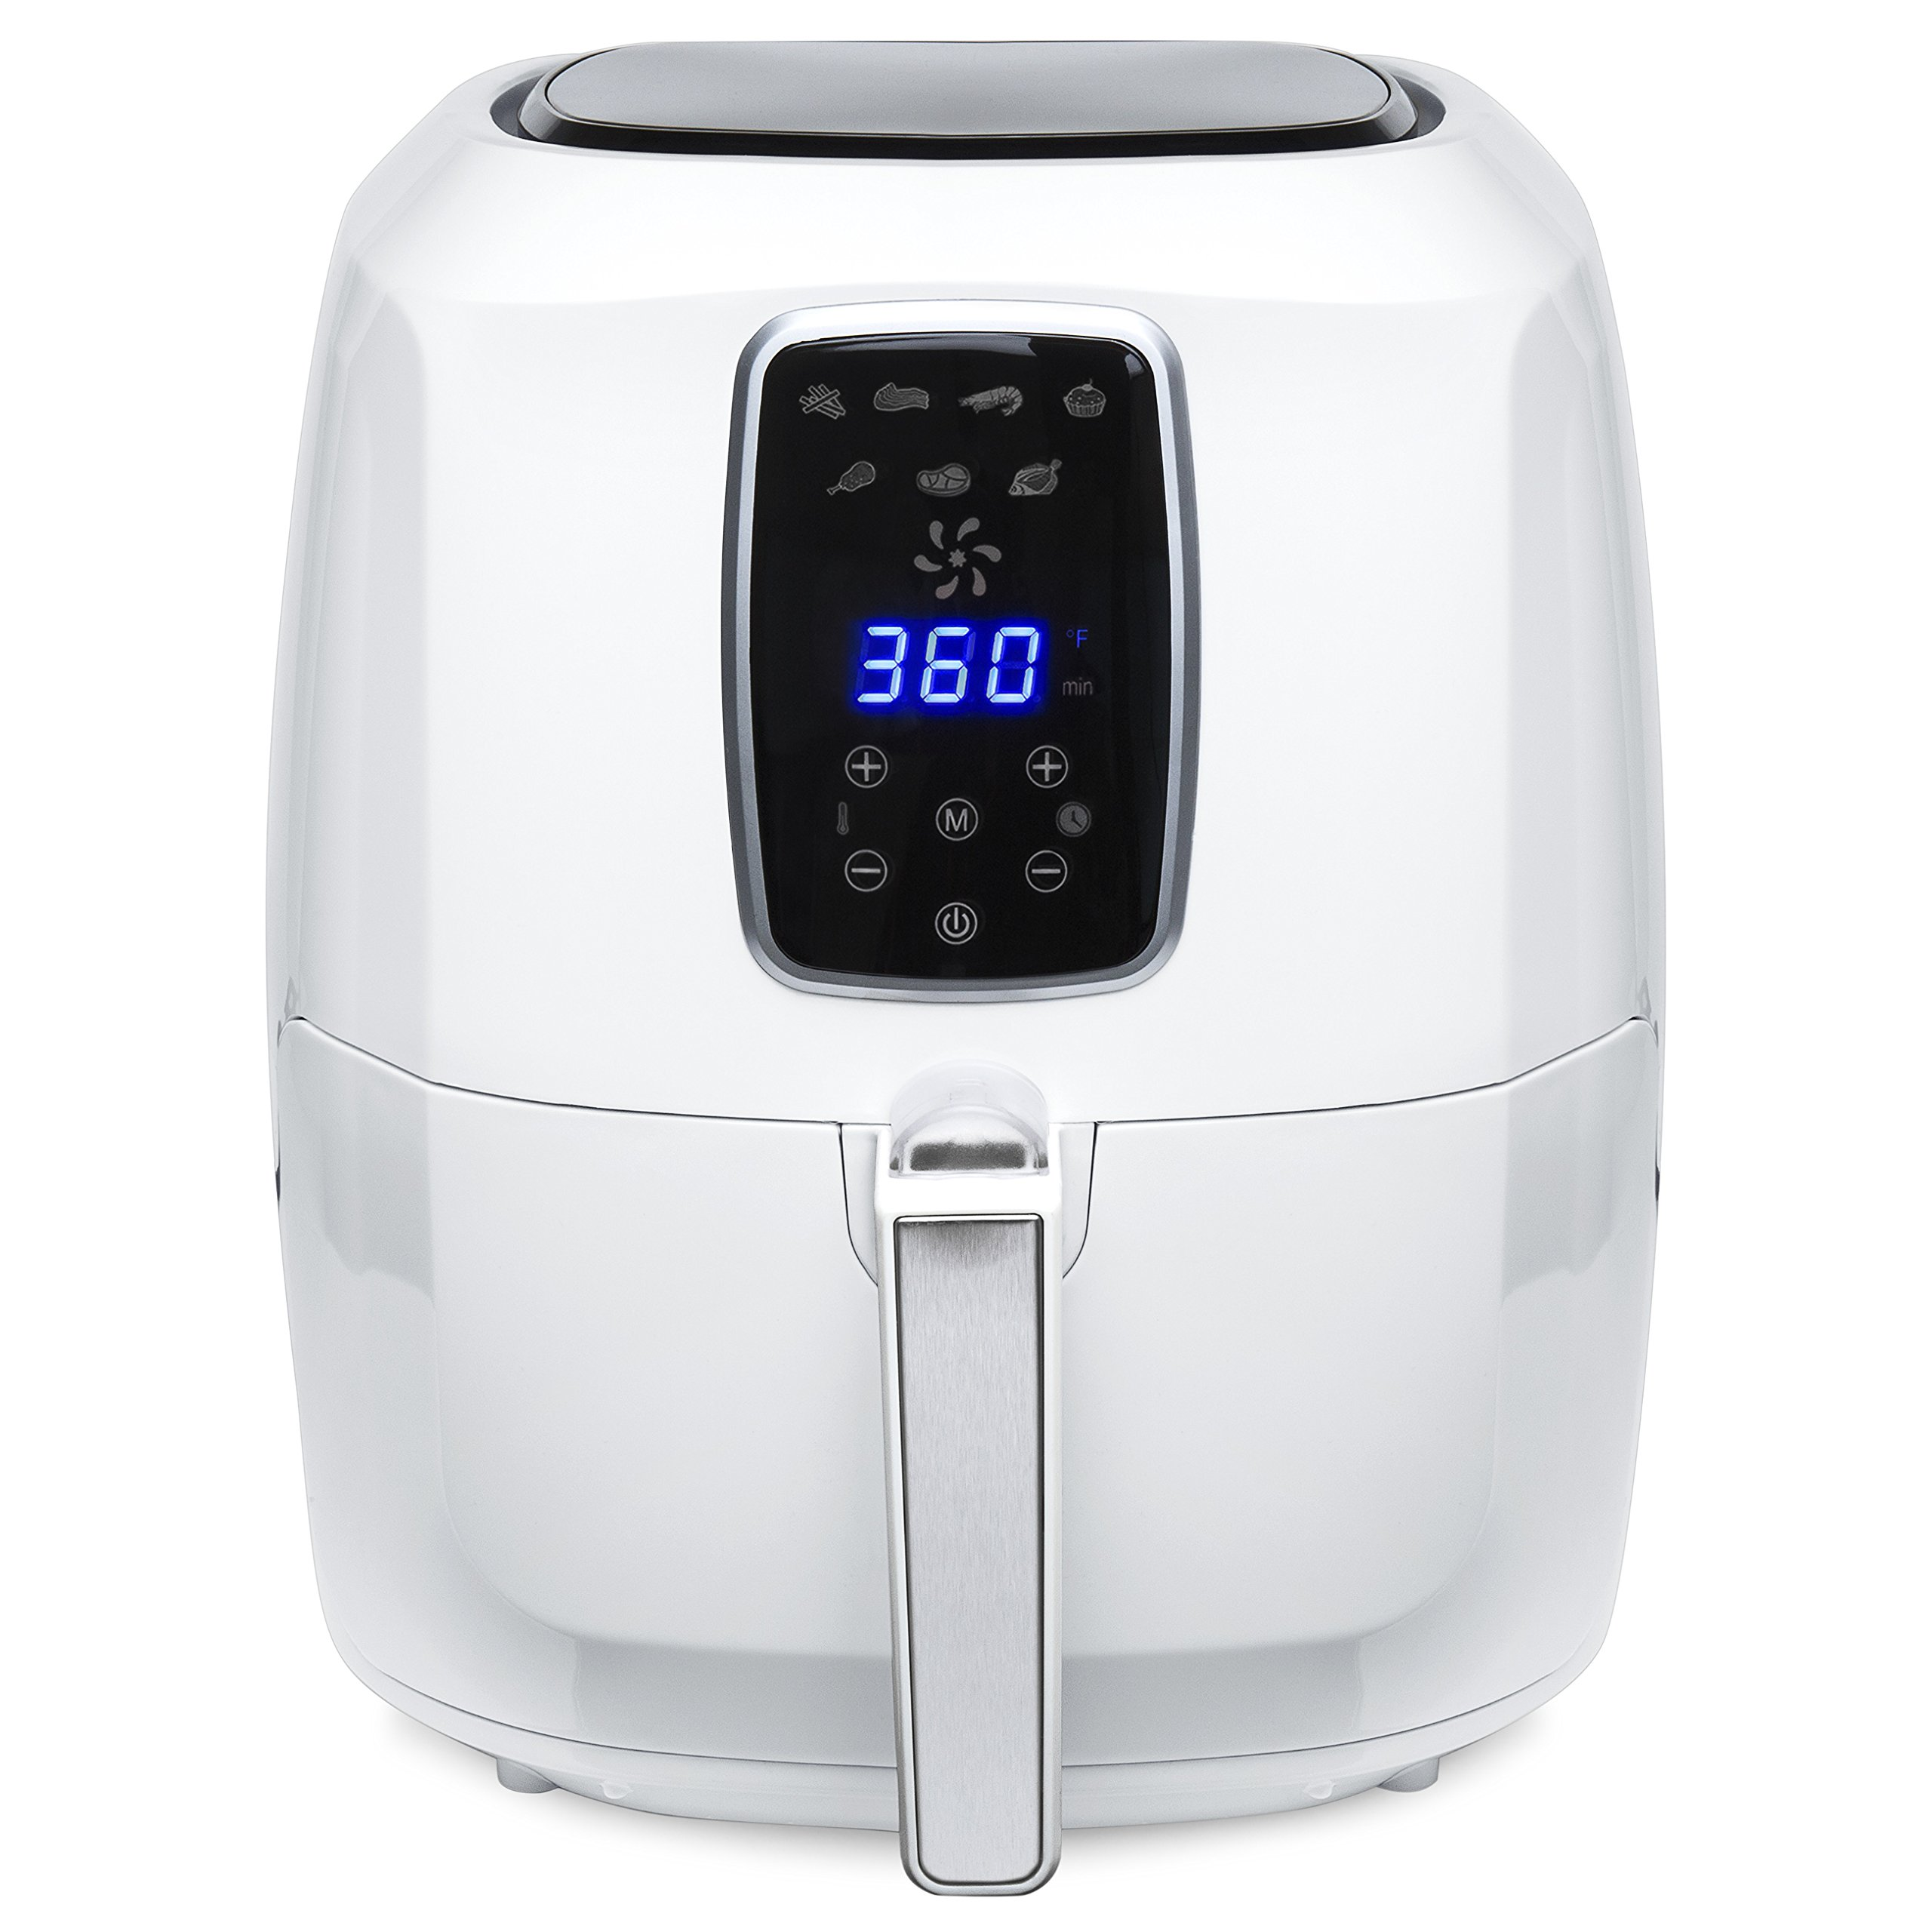 Best Choice Products 5.5-Quart Large Digital Air Fryer w/ LCD Screen, 7 Preset Settings, and Non-Stick Coating - White